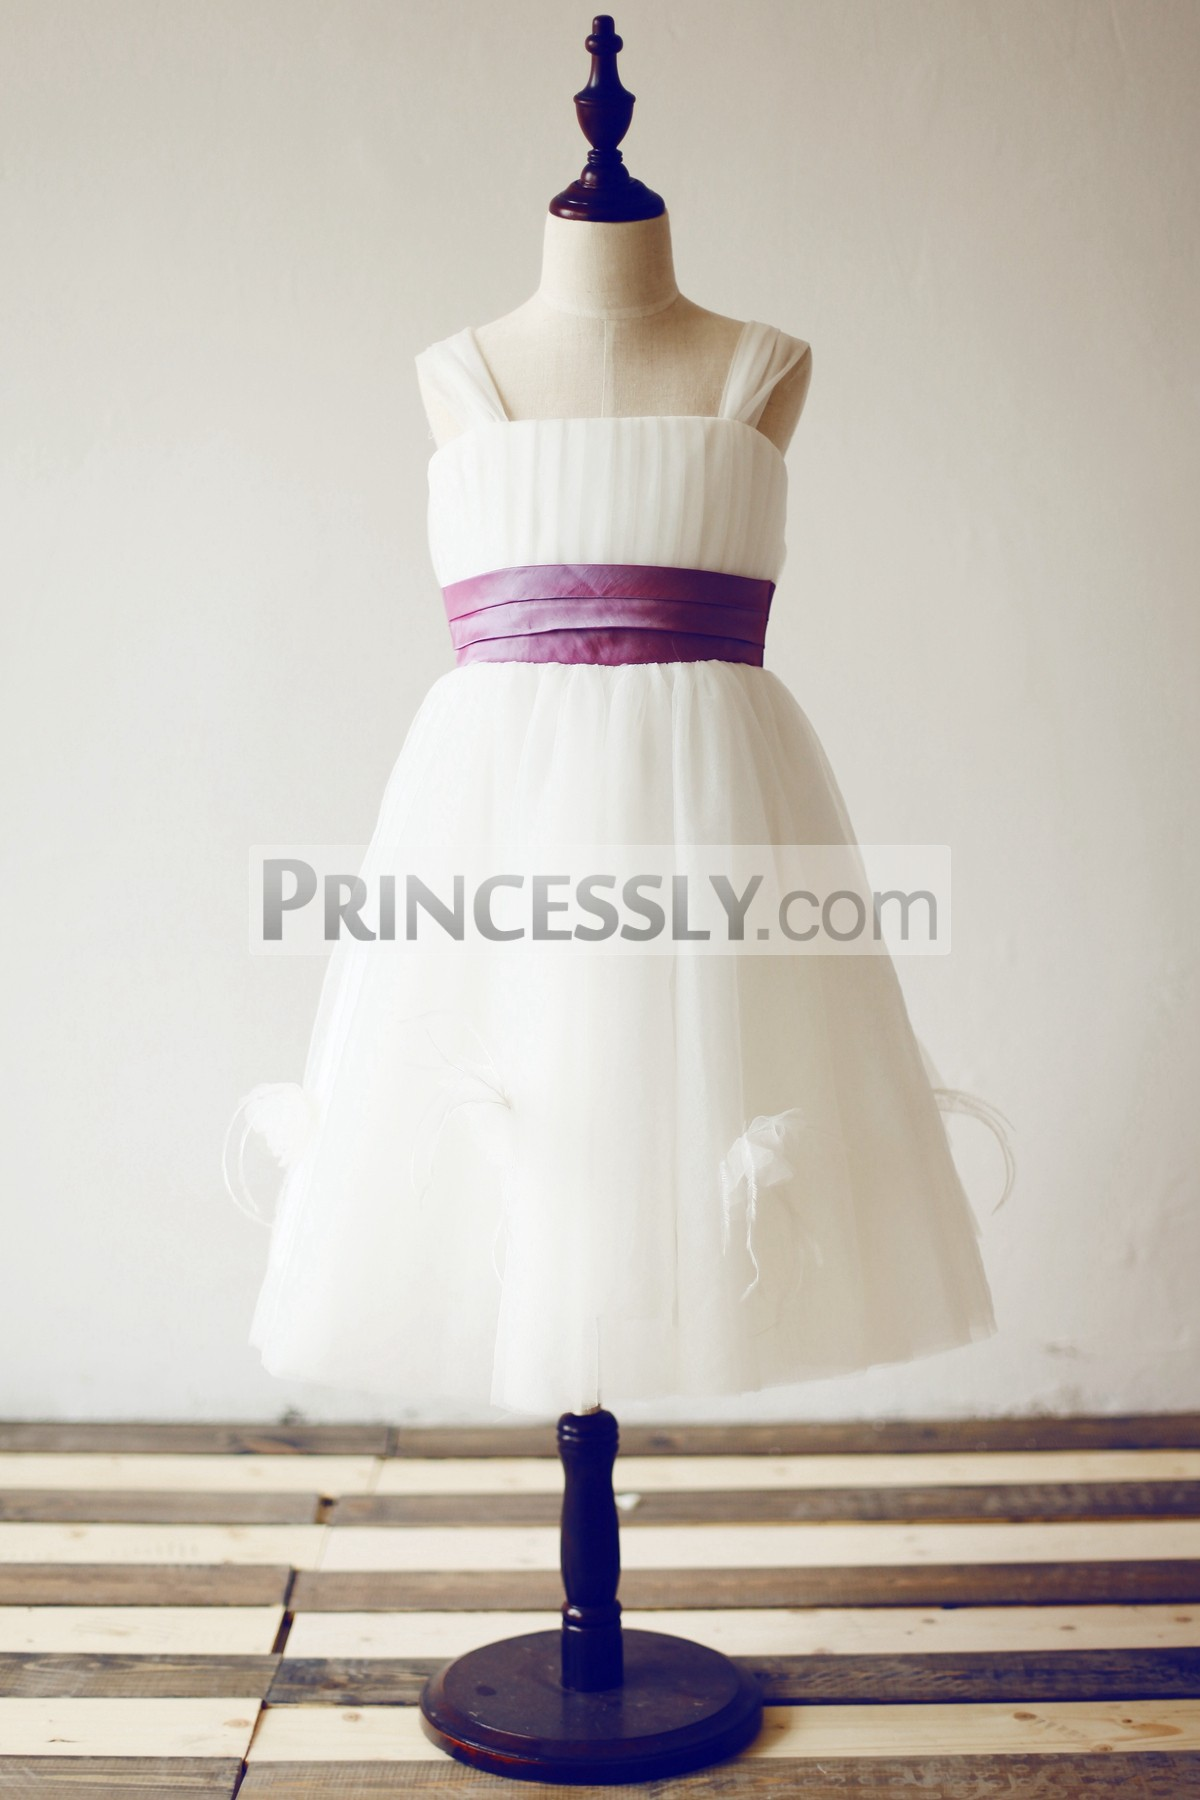 Ivory tulle flower girl dress with purple belt and feathers